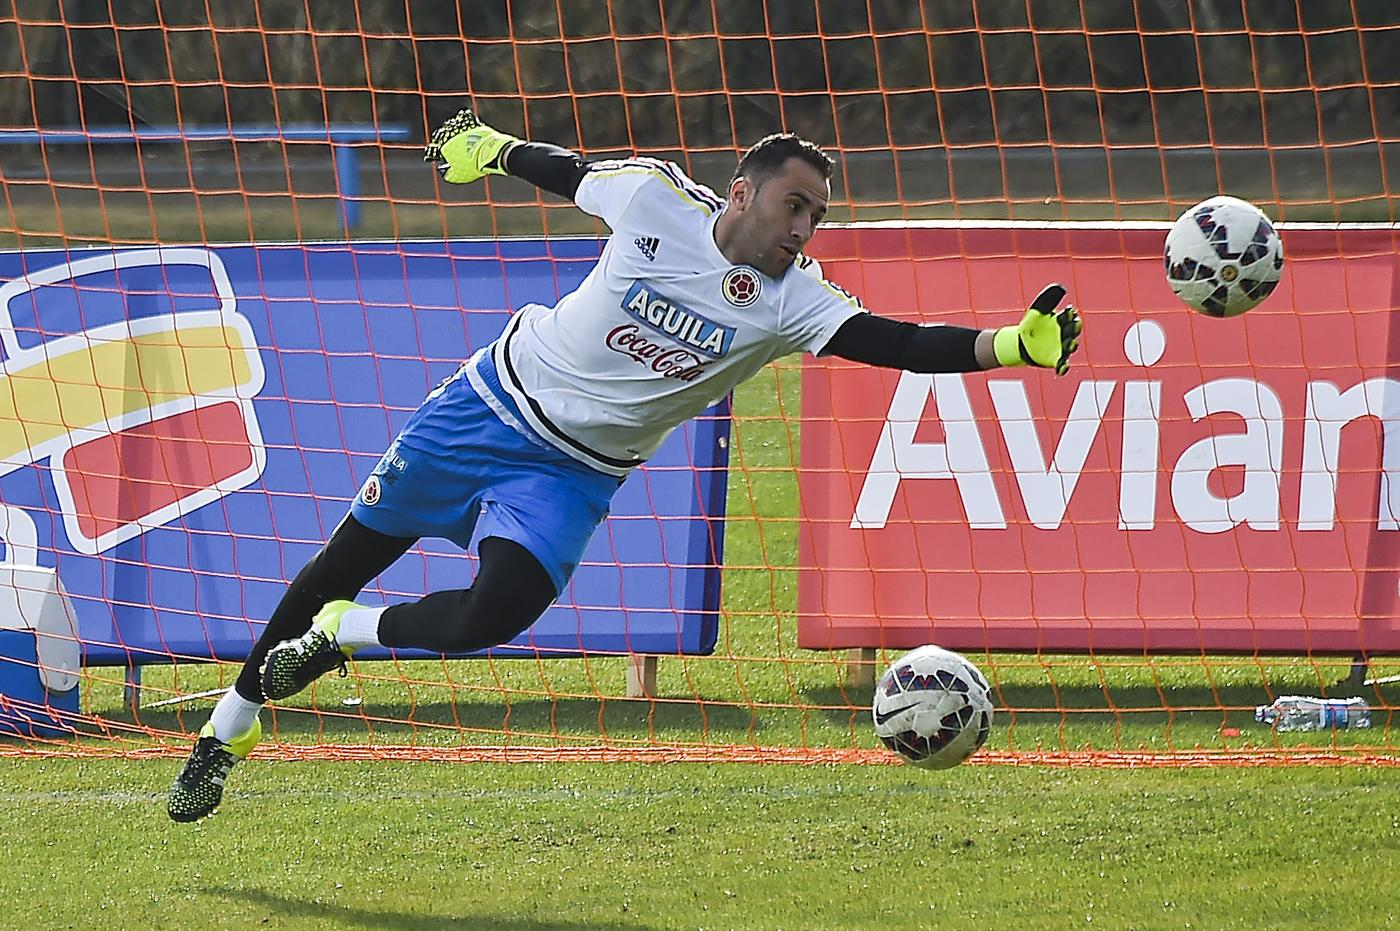 Arsenal keeper David Ospina 'set for Fenerbache transfer after agreeing personal terms'